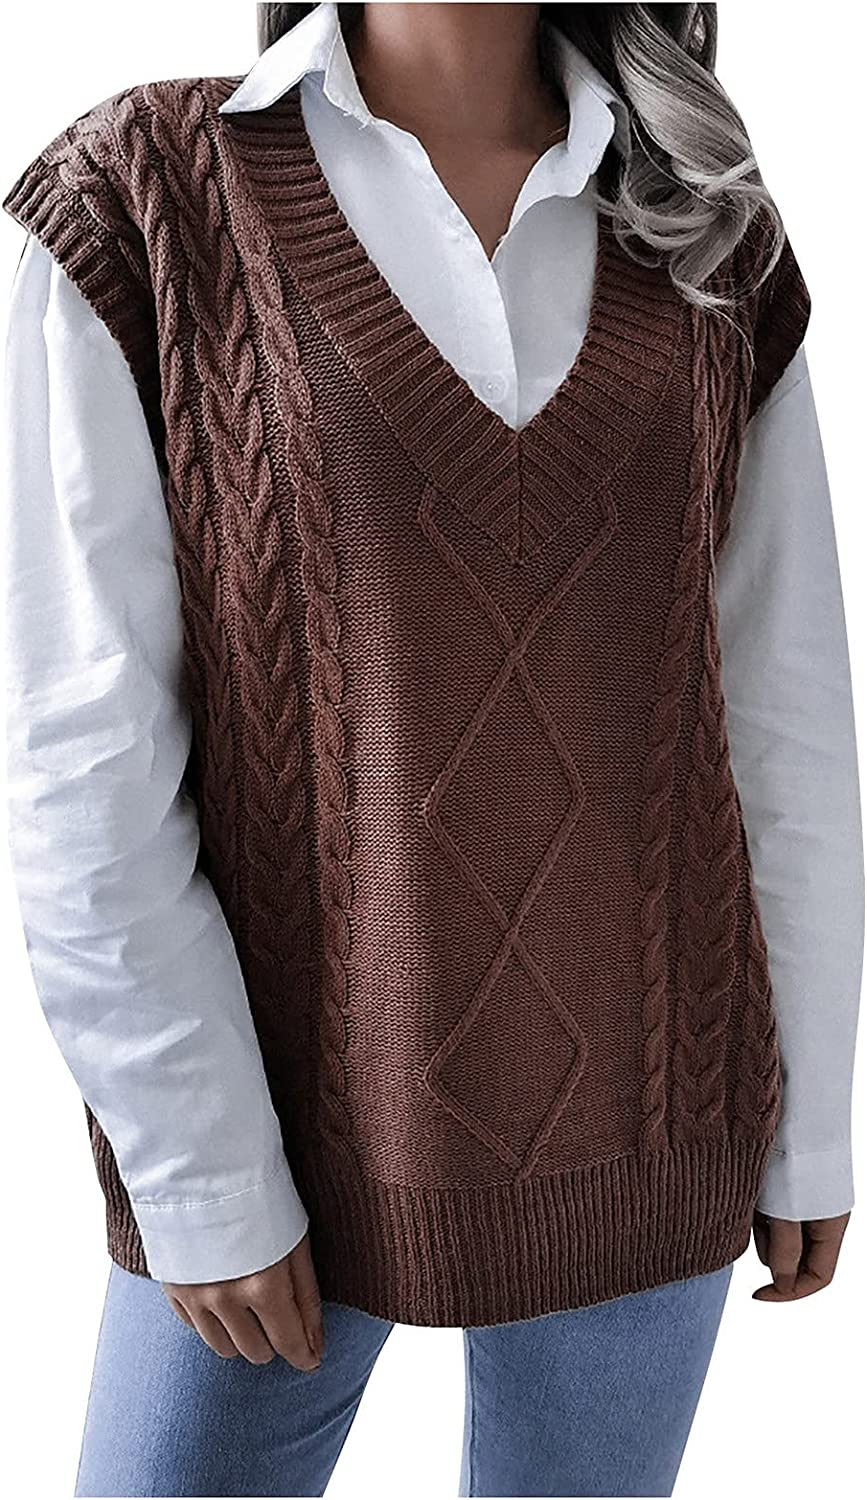 Sweater Vest Women College Style Fashion Casual Loose Knit V-Neck Hollow Argyle Sweaters Tops